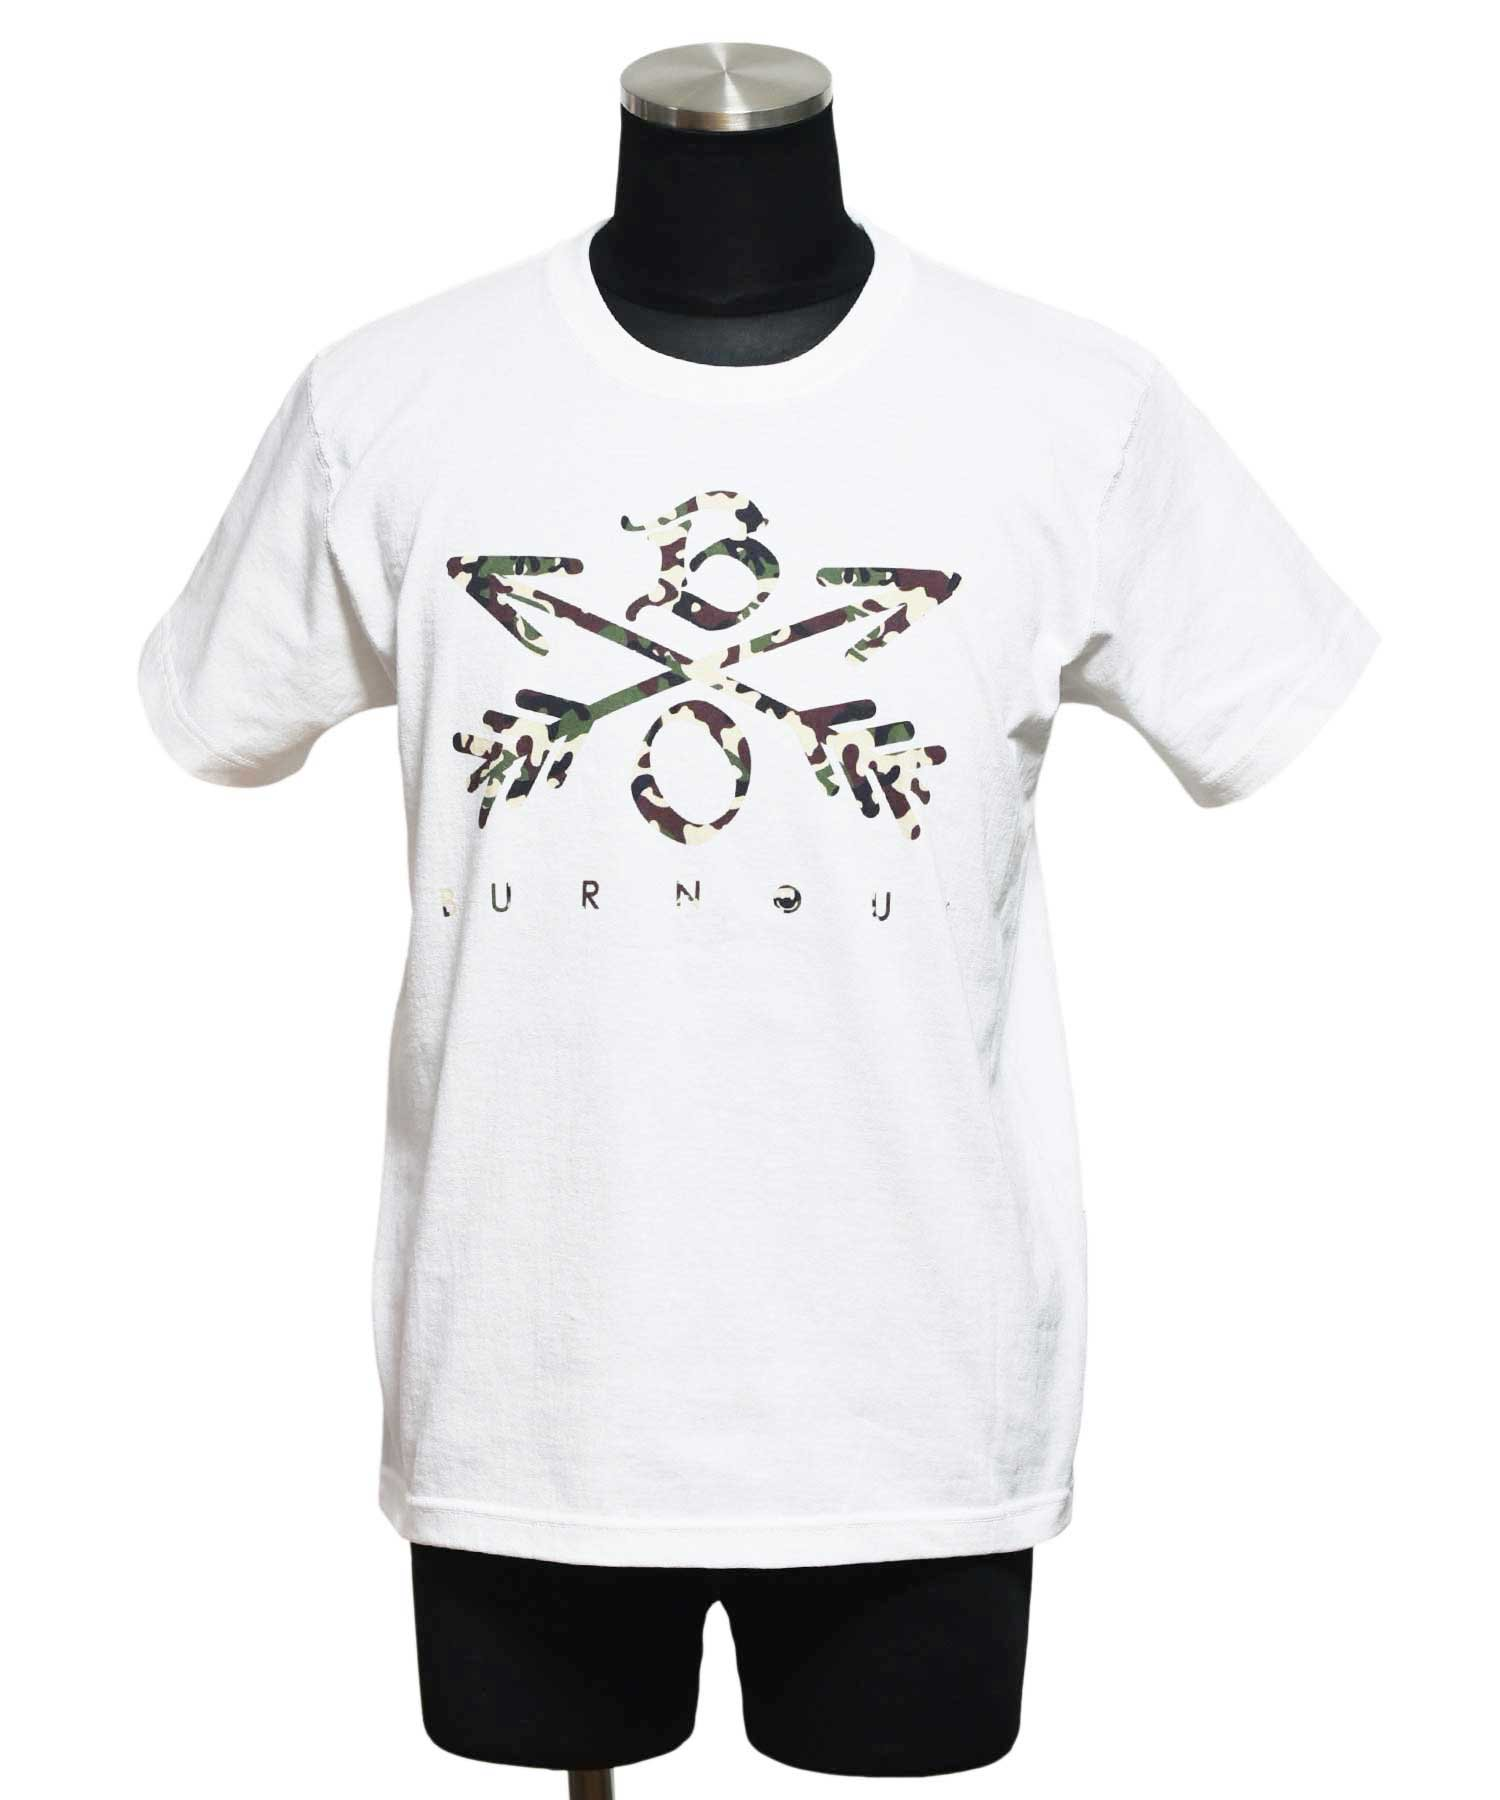 Burnout(バーンアウト) Camouflage Crossed Arrows T-Shirt 2020 / ホワイト<img class='new_mark_img2' src='https://img.shop-pro.jp/img/new/icons5.gif' style='border:none;display:inline;margin:0px;padding:0px;width:auto;' />